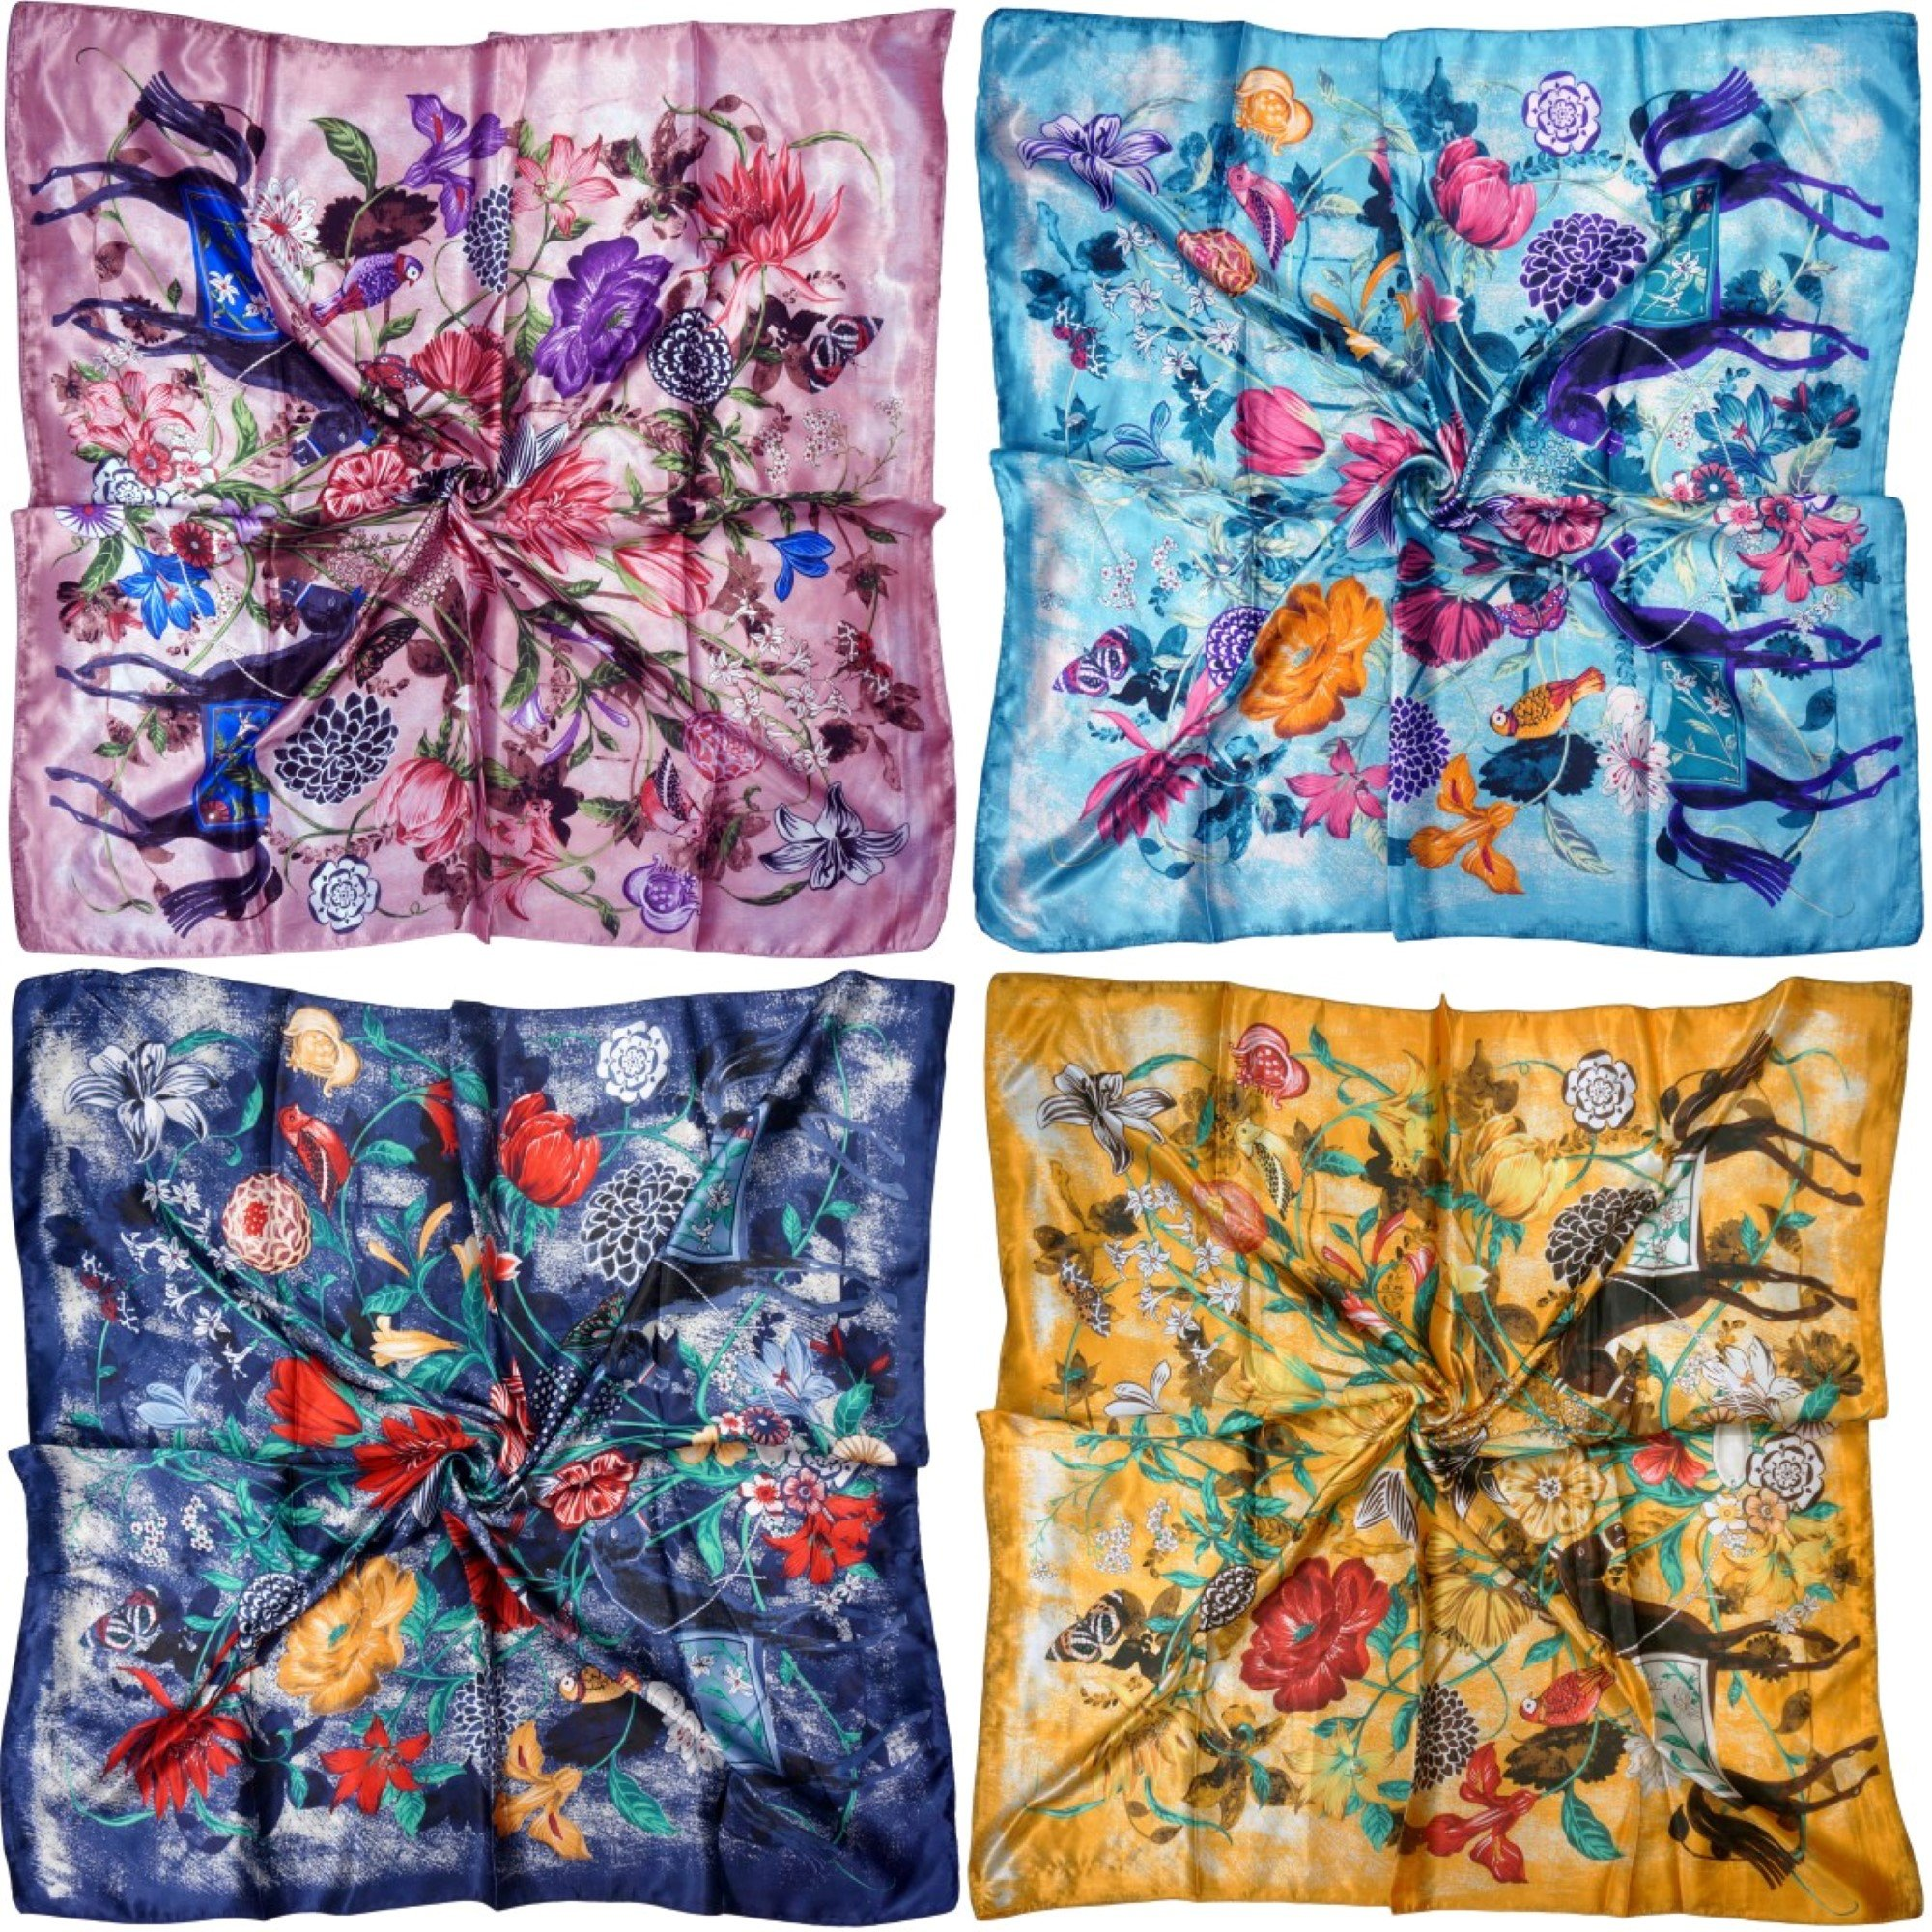 LilMents 4 Mixed Designs Large 35'' × 35'' Square Polyester Satin Neck Head Scarf Scarves Set (Set P)